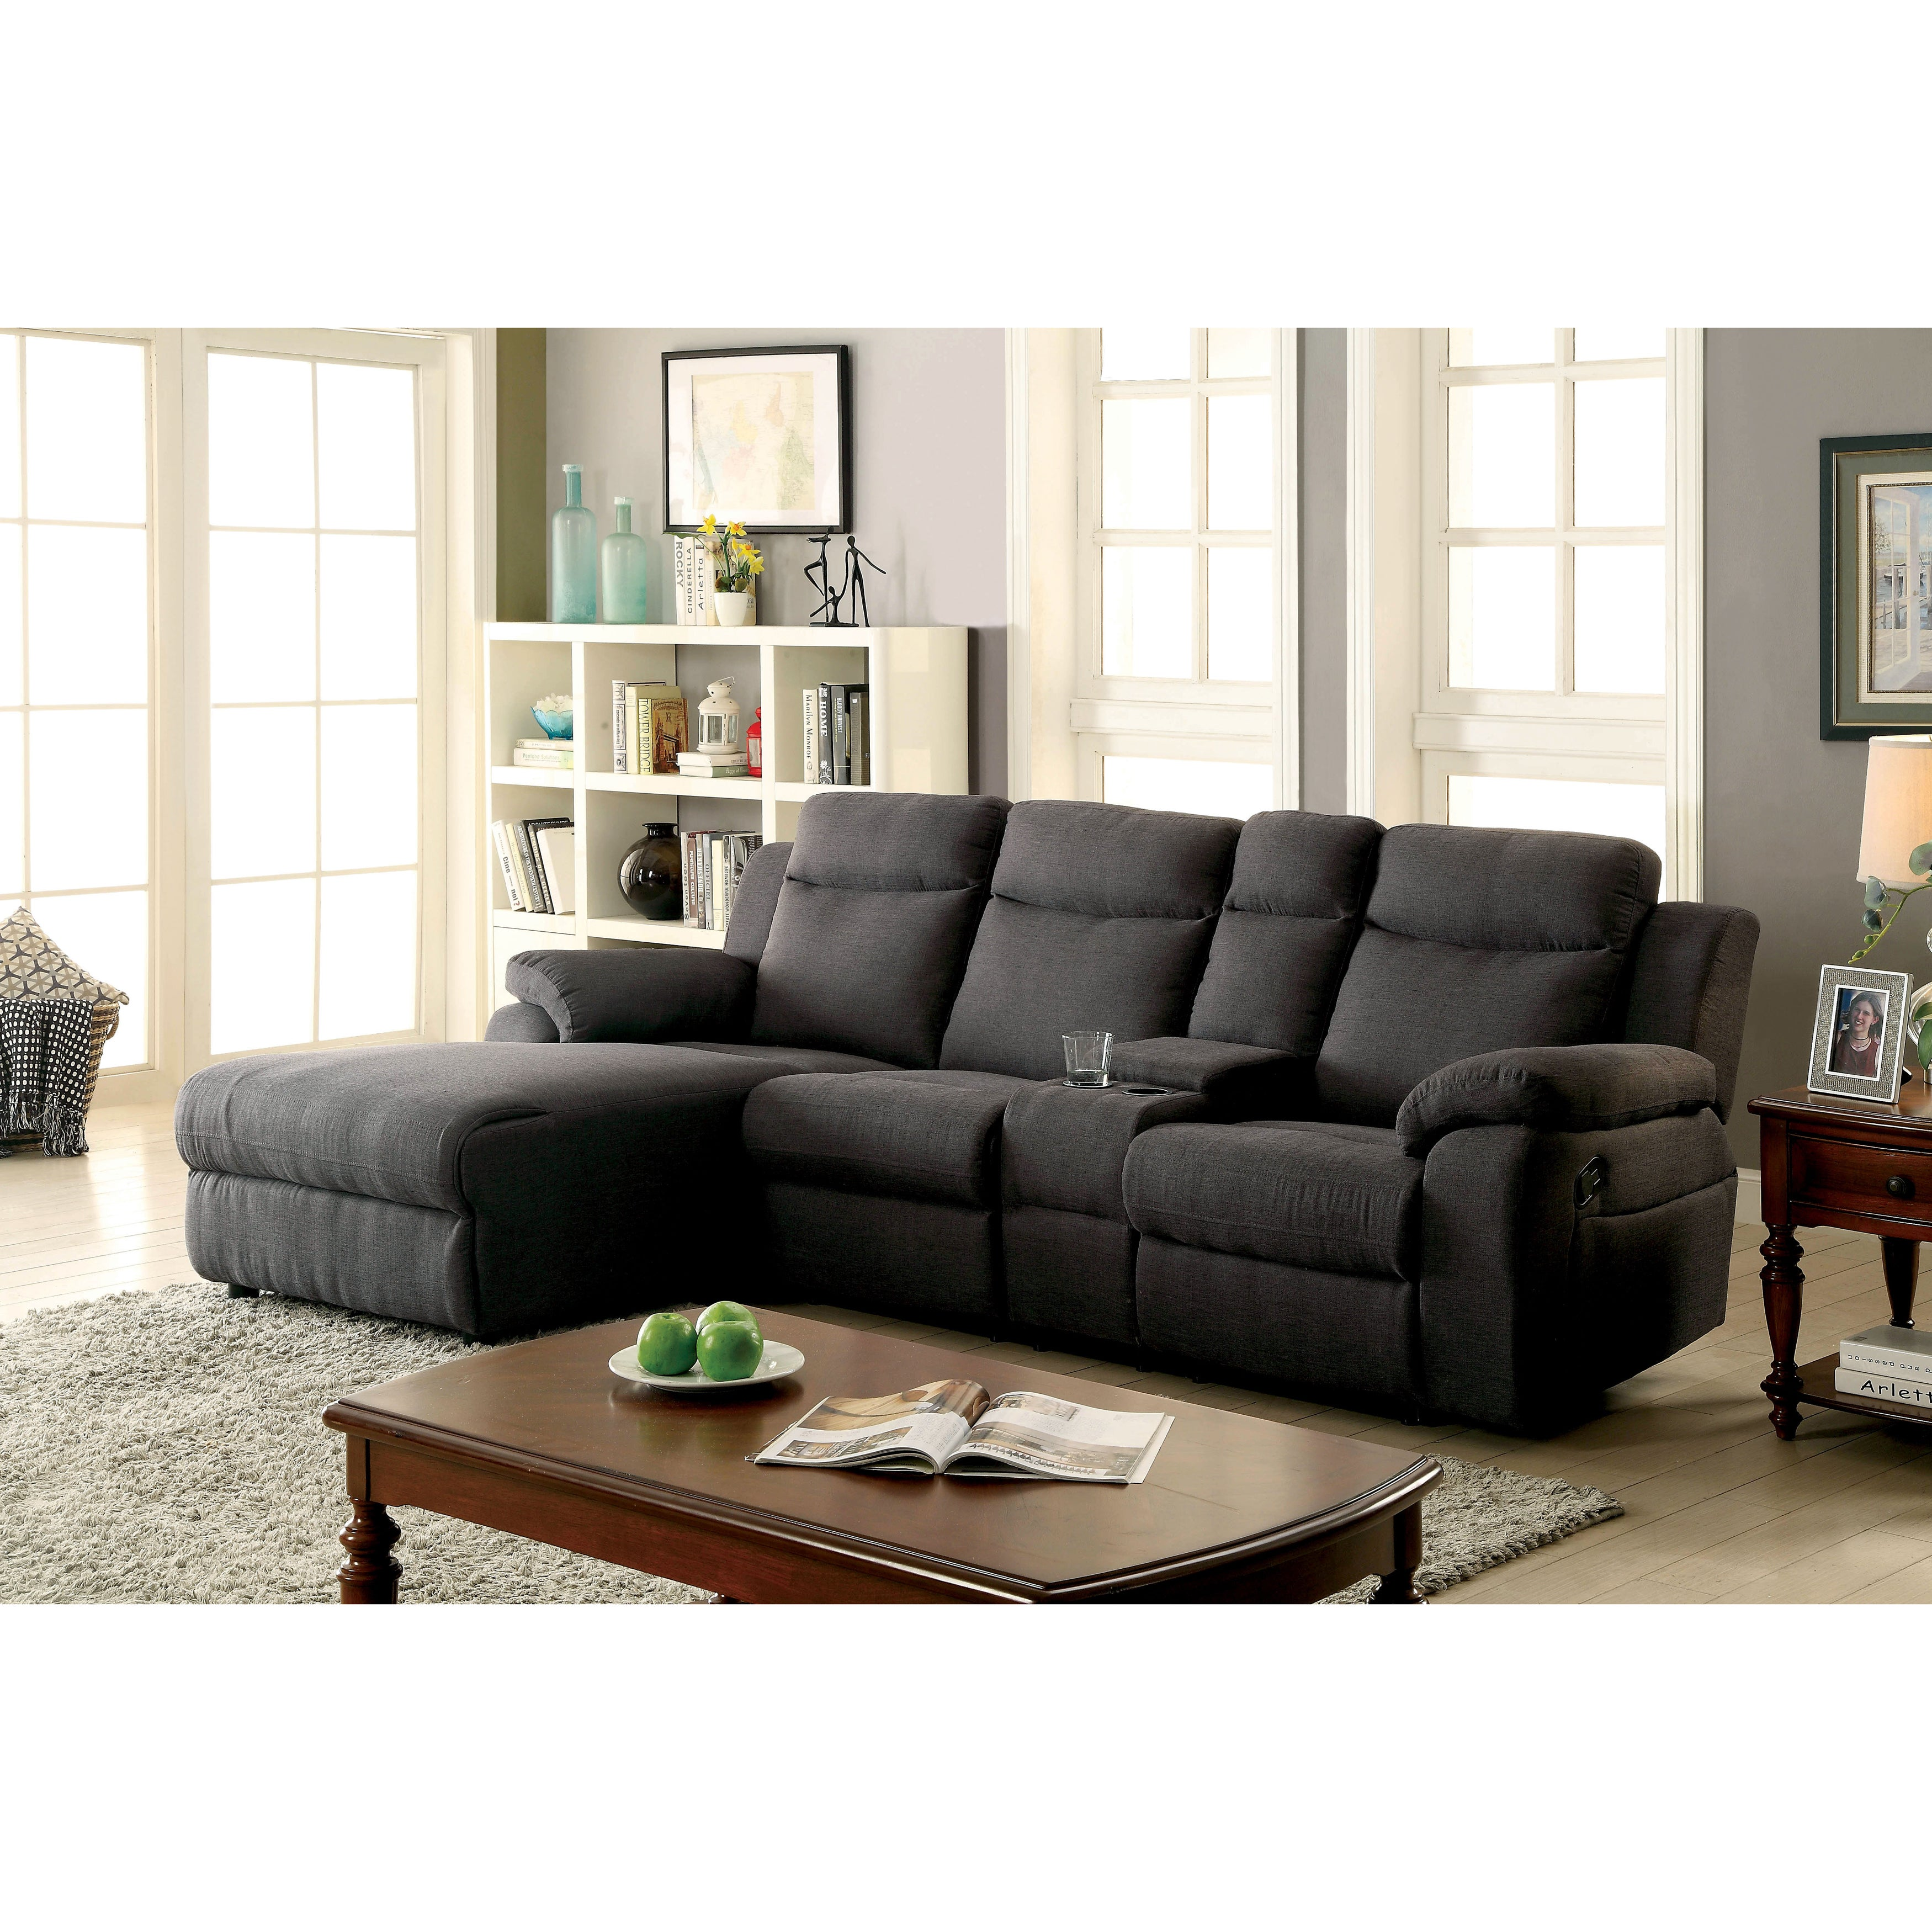 Pleasing Furniture Of America Sina Transitional Linen Like Fabric Reclining Sectional Andrewgaddart Wooden Chair Designs For Living Room Andrewgaddartcom